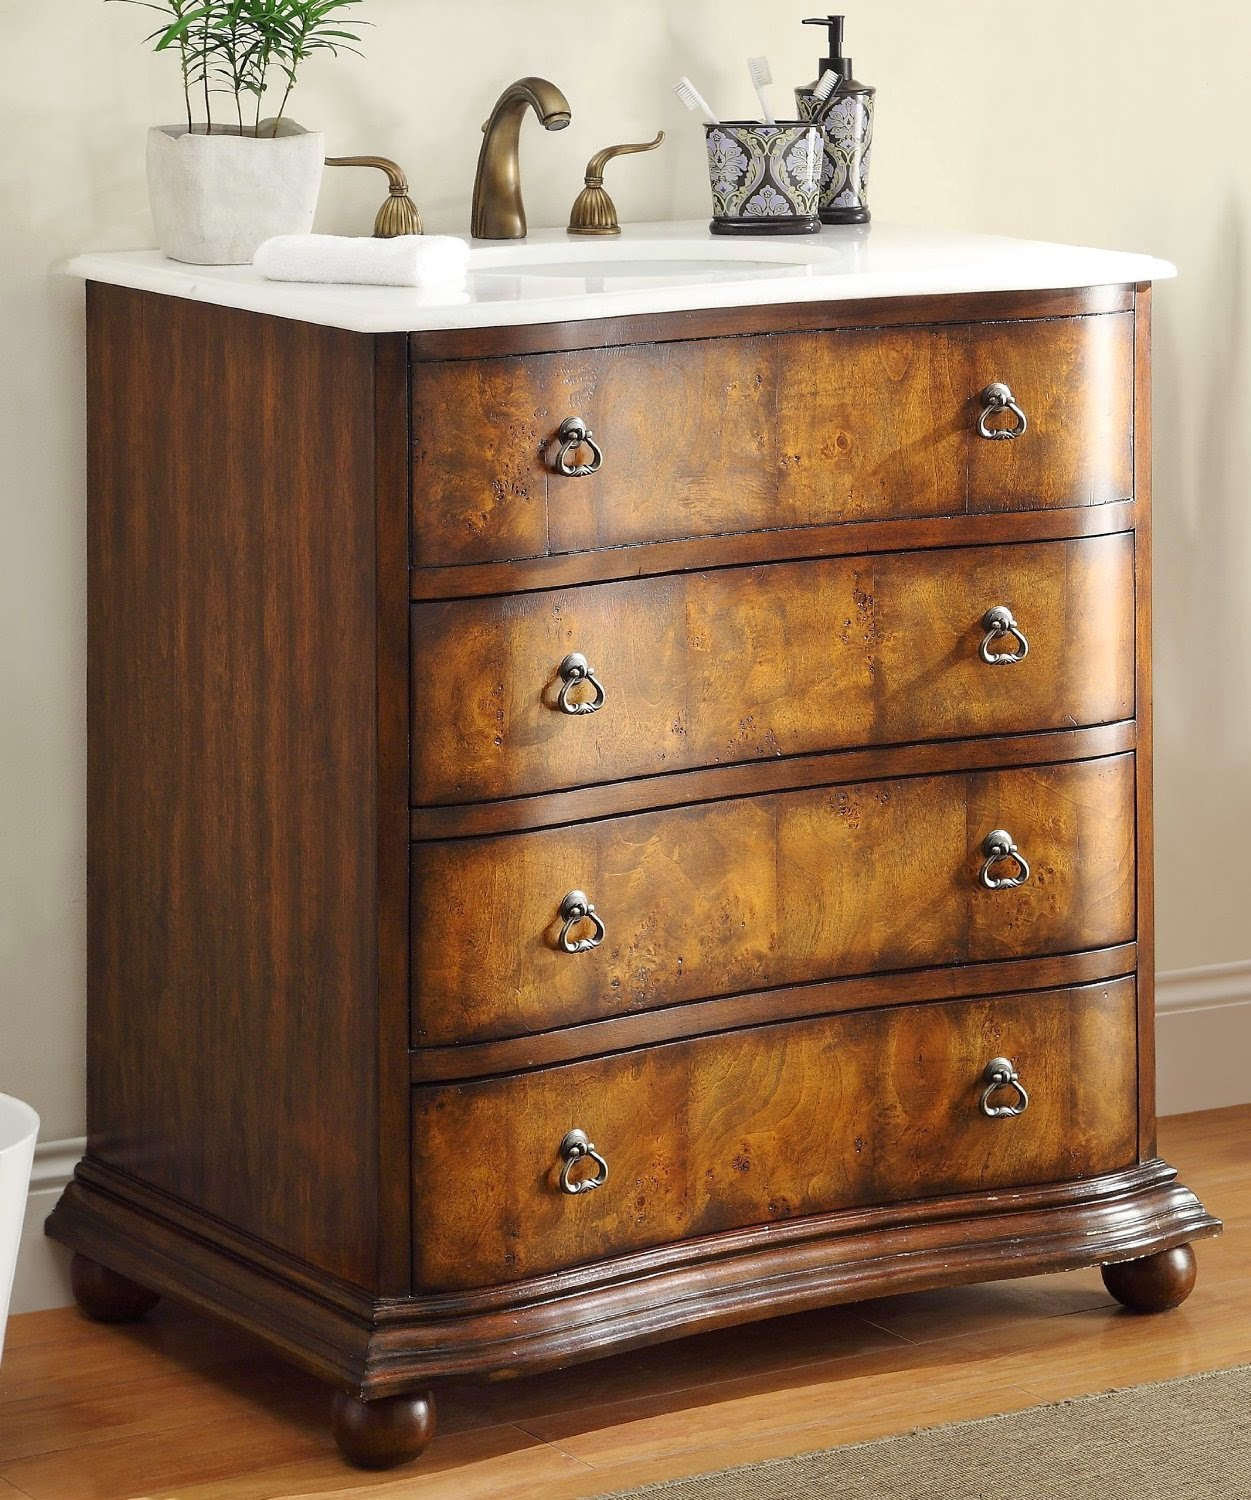 Discount Bathroom Vanities Antique Bathroom Vanities